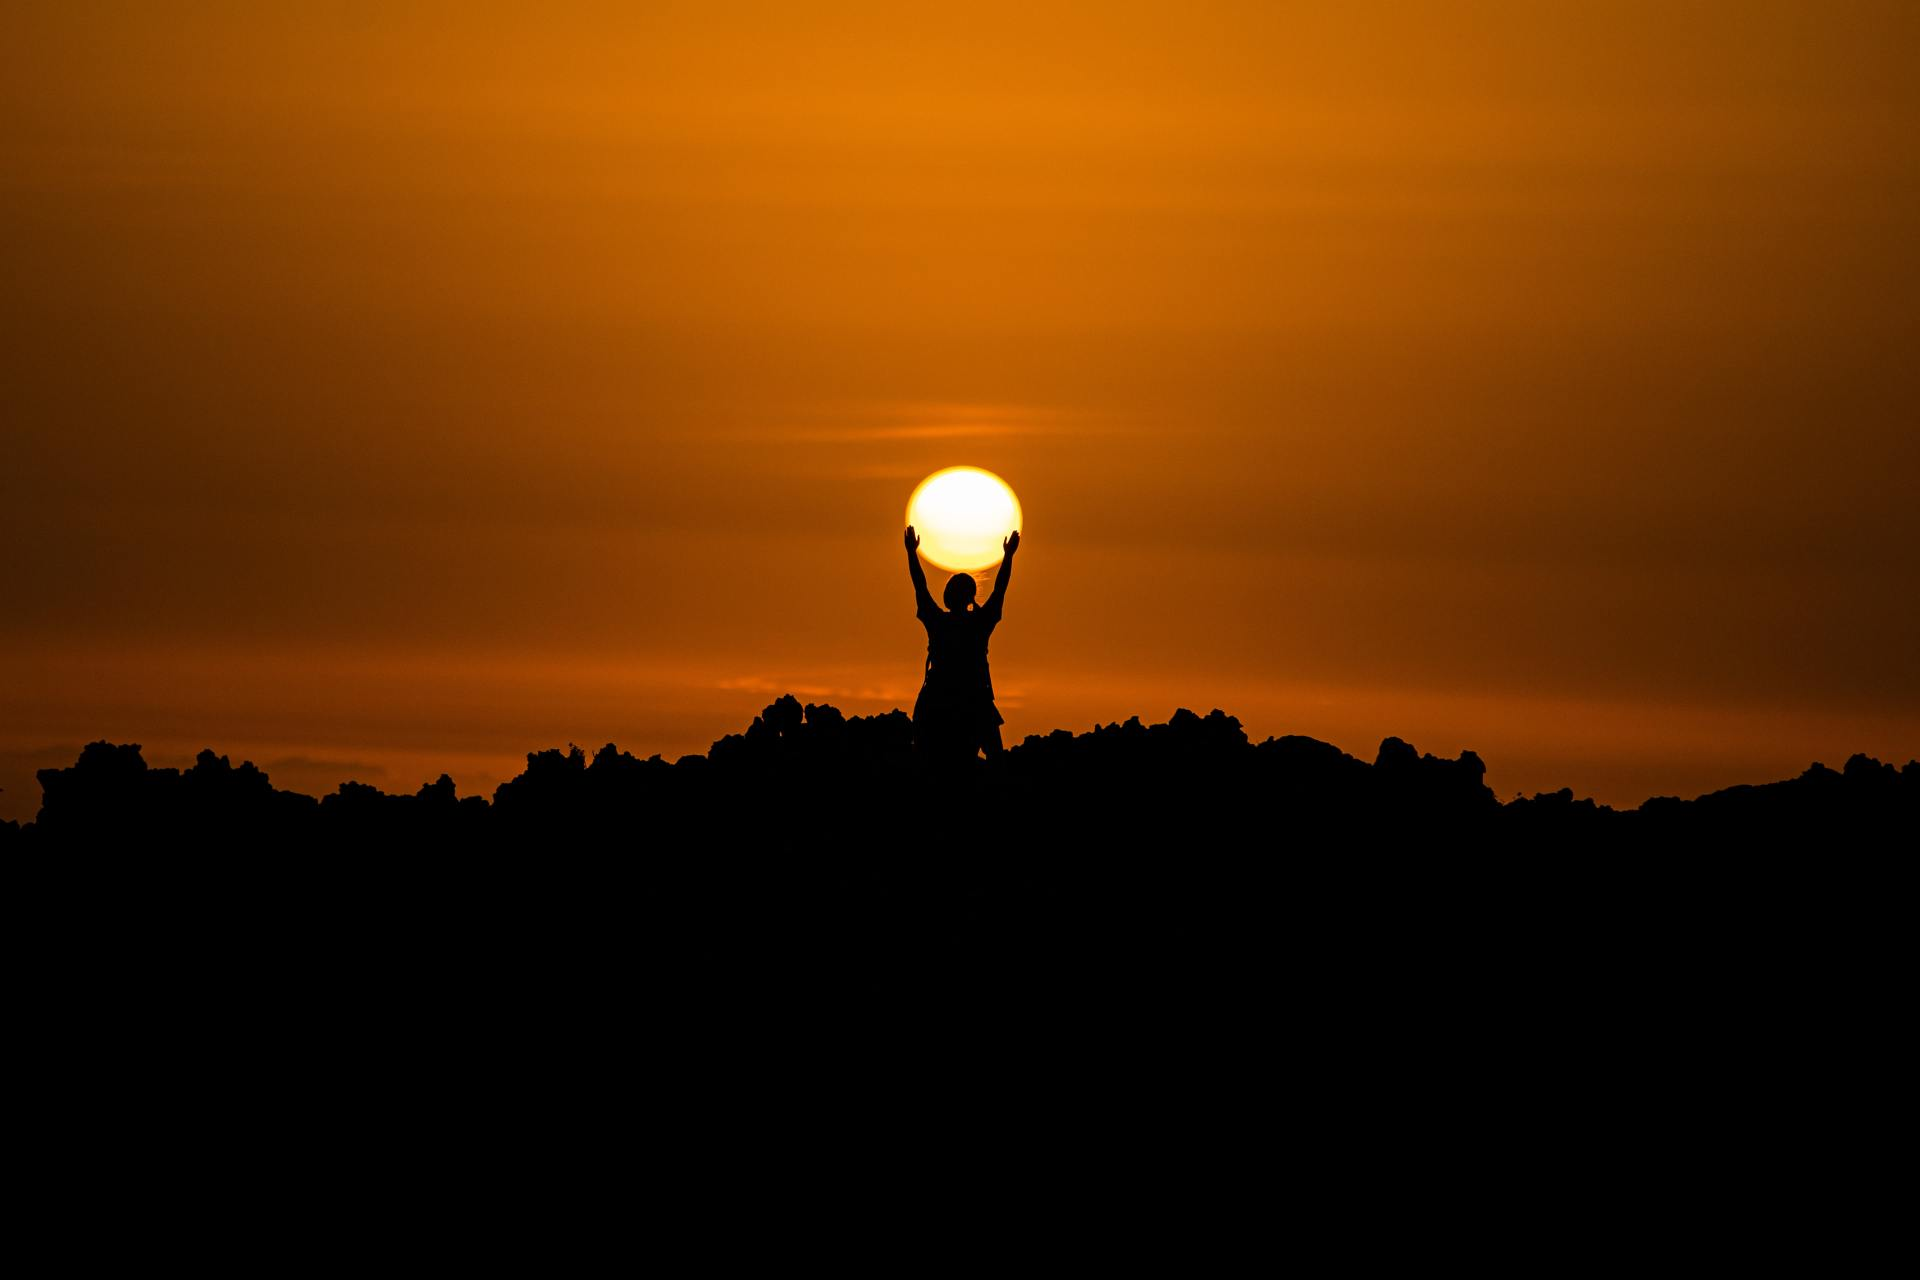 silhouette of person holding sun